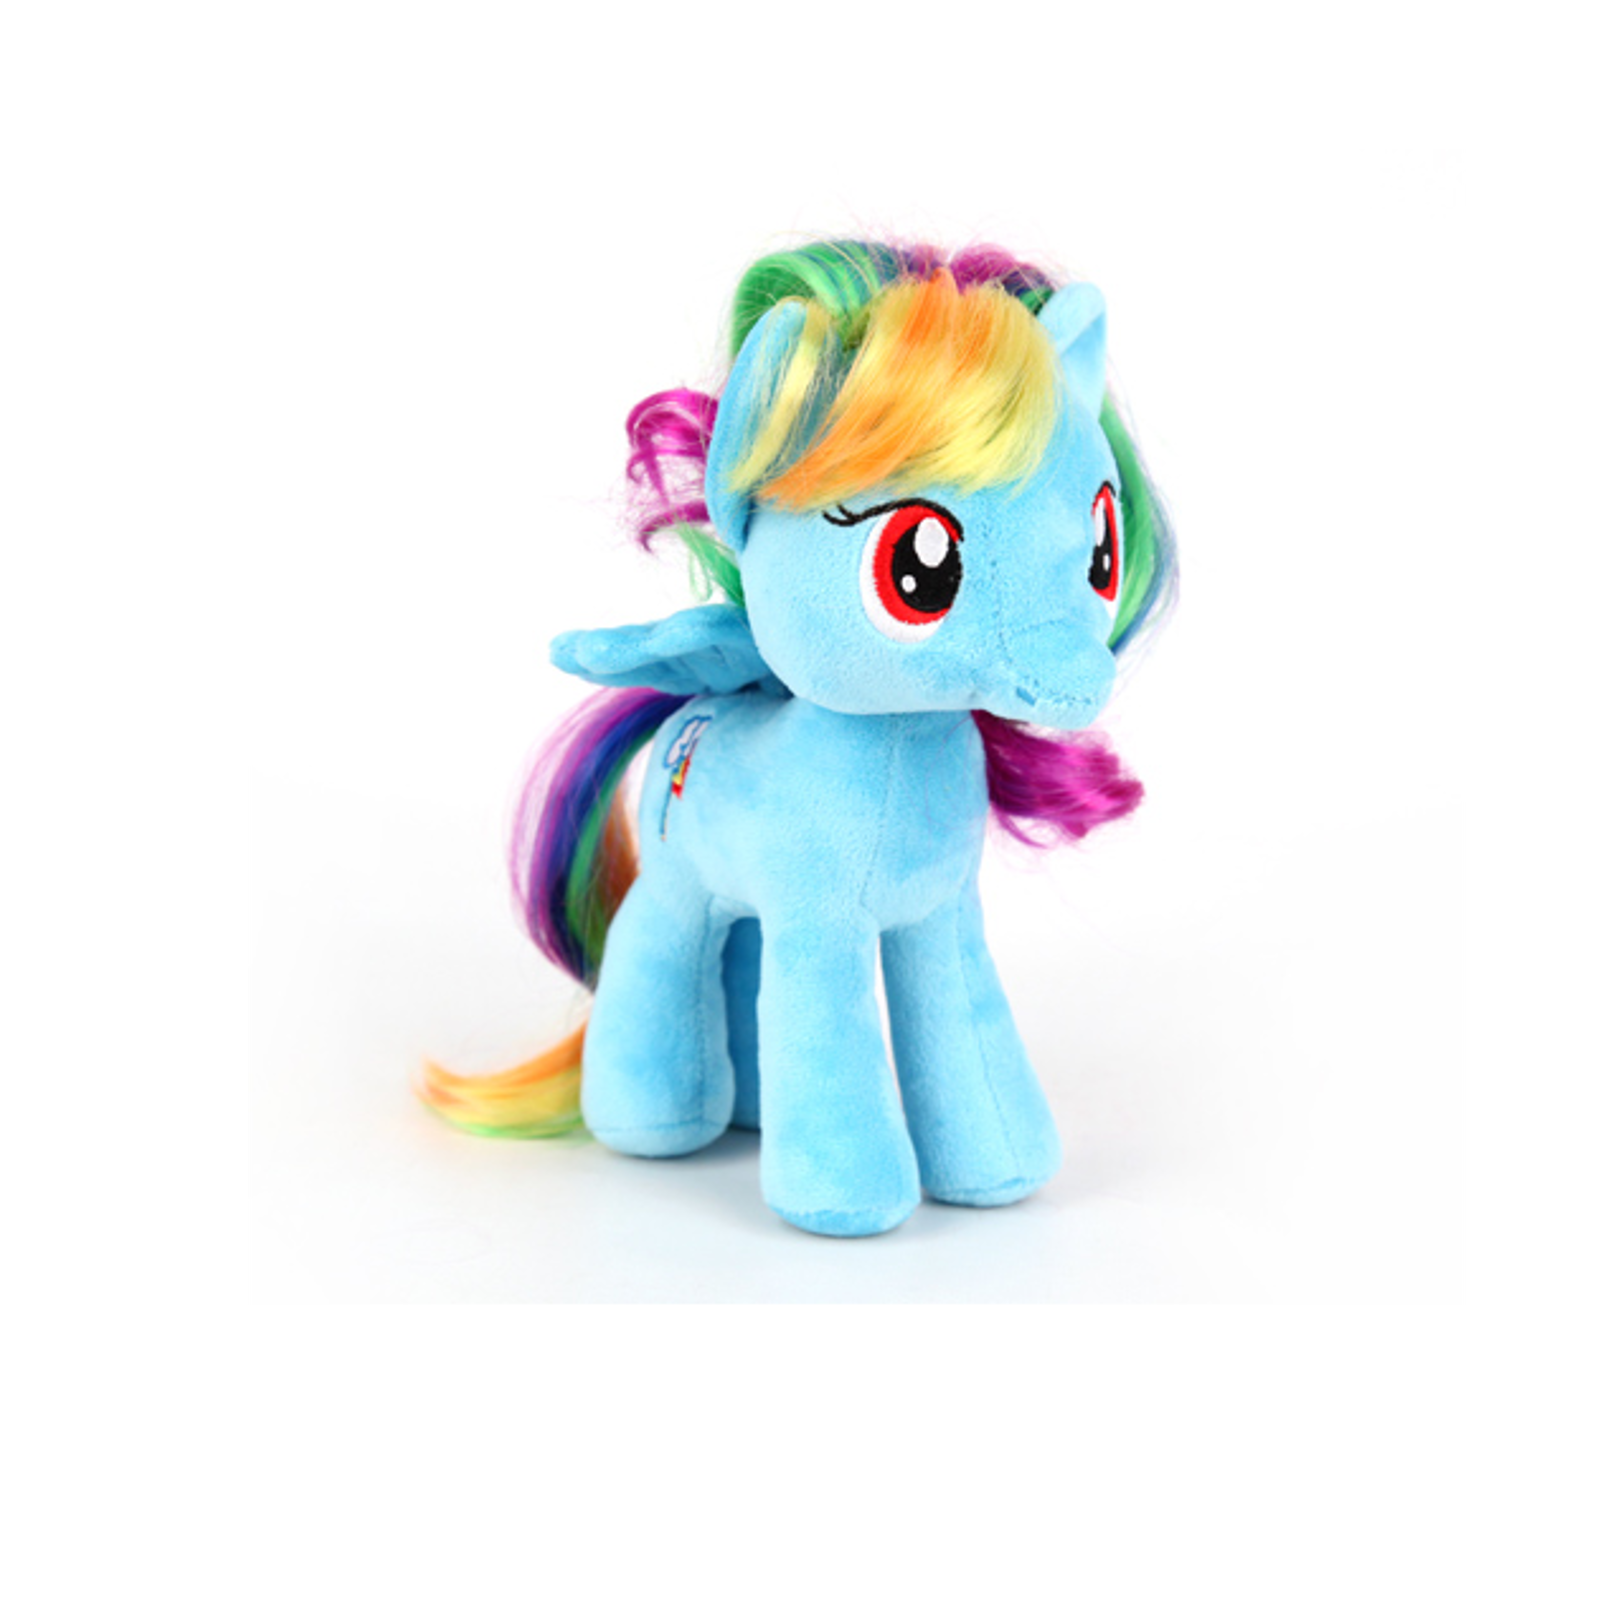 ������ ������� My Little Pony 22 �� ������